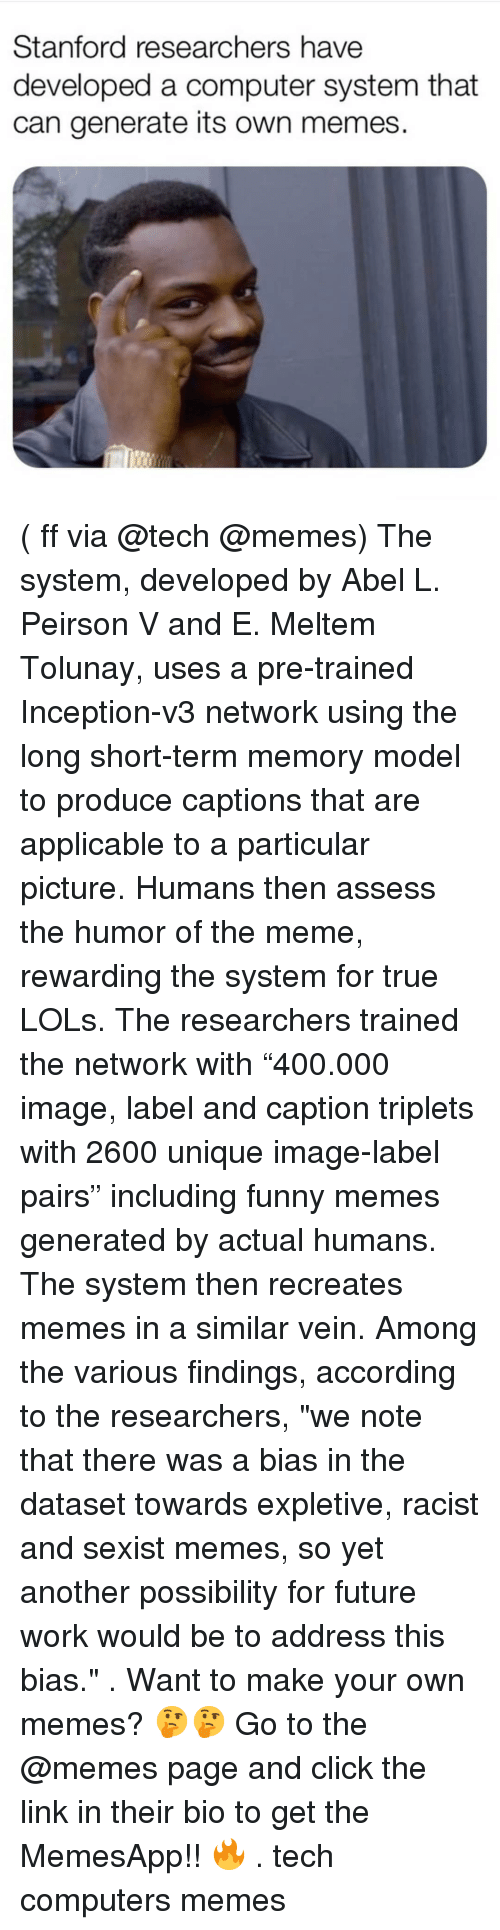 """Memes Page: Stanford researchers have  developed a computer system that  can generate its own memes ( ff via @tech @memes) The system, developed by Abel L. Peirson V and E. Meltem Tolunay, uses a pre-trained Inception-v3 network using the long short-term memory model to produce captions that are applicable to a particular picture. Humans then assess the humor of the meme, rewarding the system for true LOLs. The researchers trained the network with """"400.000 image, label and caption triplets with 2600 unique image-label pairs"""" including funny memes generated by actual humans. The system then recreates memes in a similar vein. Among the various findings, according to the researchers, """"we note that there was a bias in the dataset towards expletive, racist and sexist memes, so yet another possibility for future work would be to address this bias."""" . Want to make your own memes? 🤔🤔 Go to the @memes page and click the link in their bio to get the MemesApp!! 🔥 . tech computers memes"""